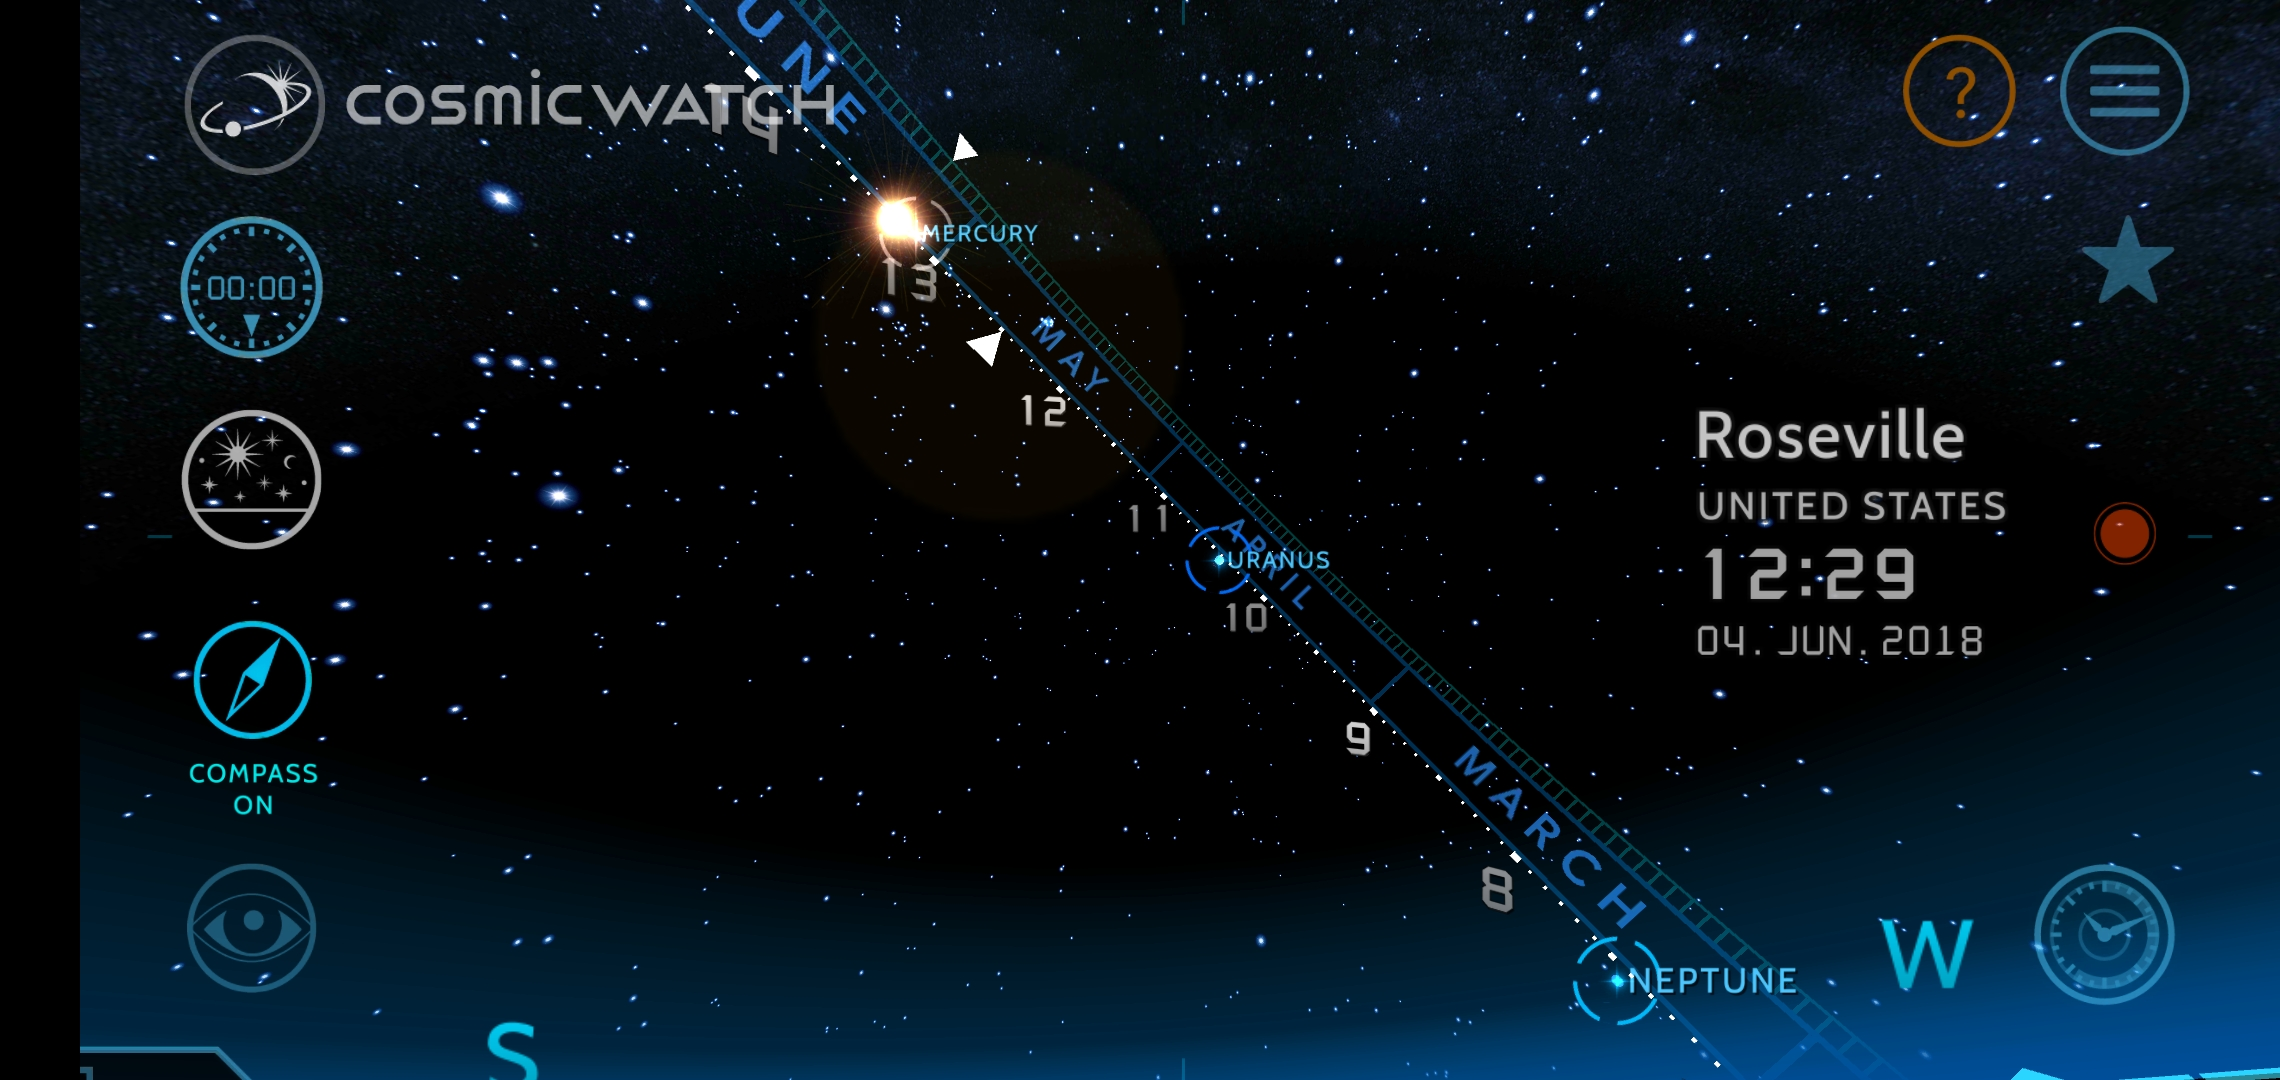 Cosmic Watch updated to v2 0 with real-time sky view, astronomical